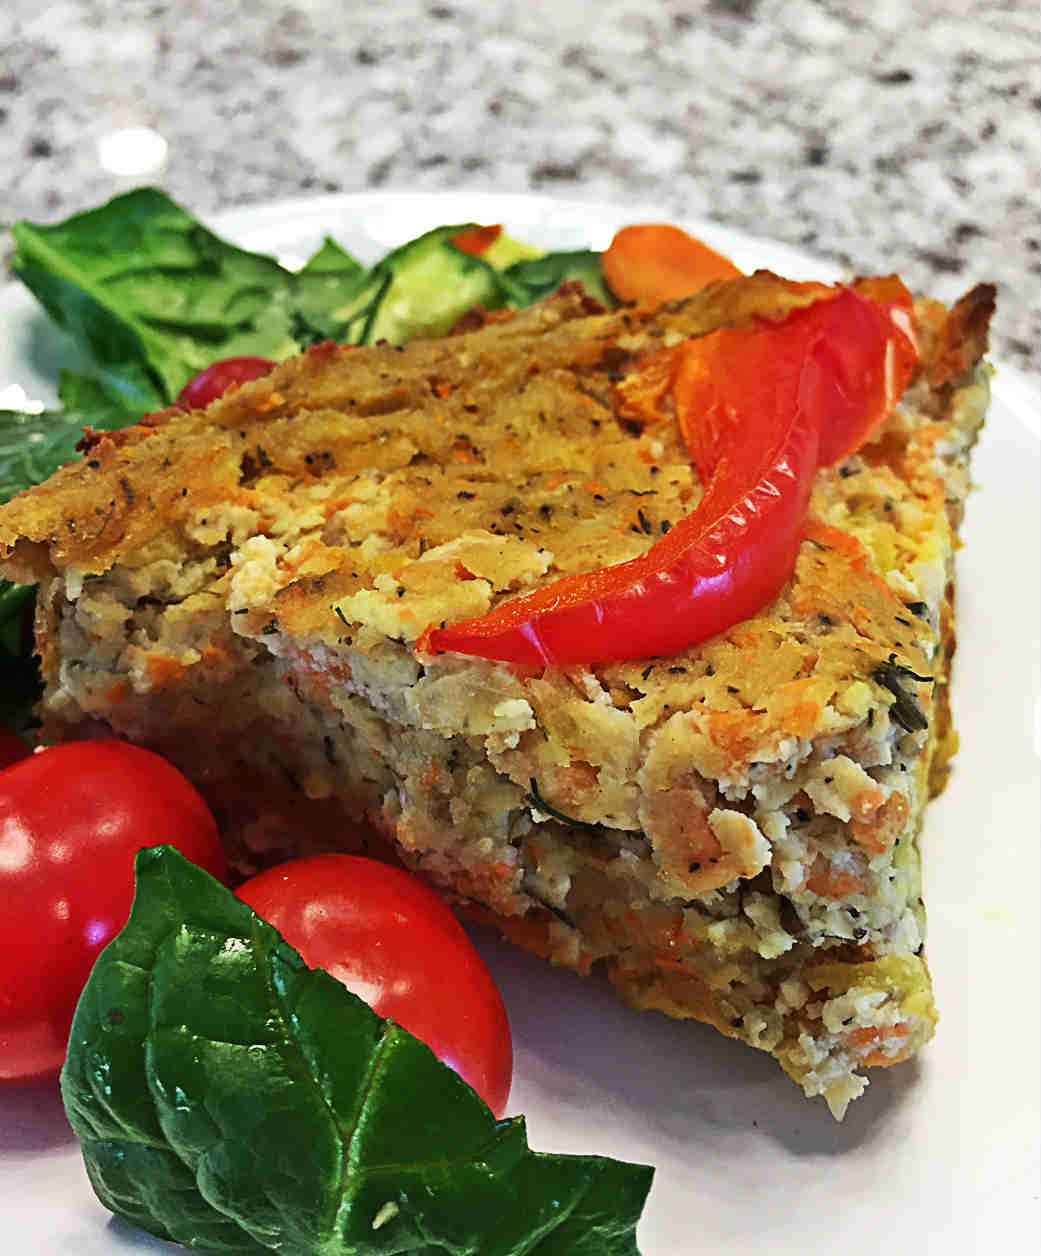 Vegan crustless quiche, with red pepper, gluten-free, oil-free, tofu, crustless, eggless, great for breakfast, brunch or dinner.